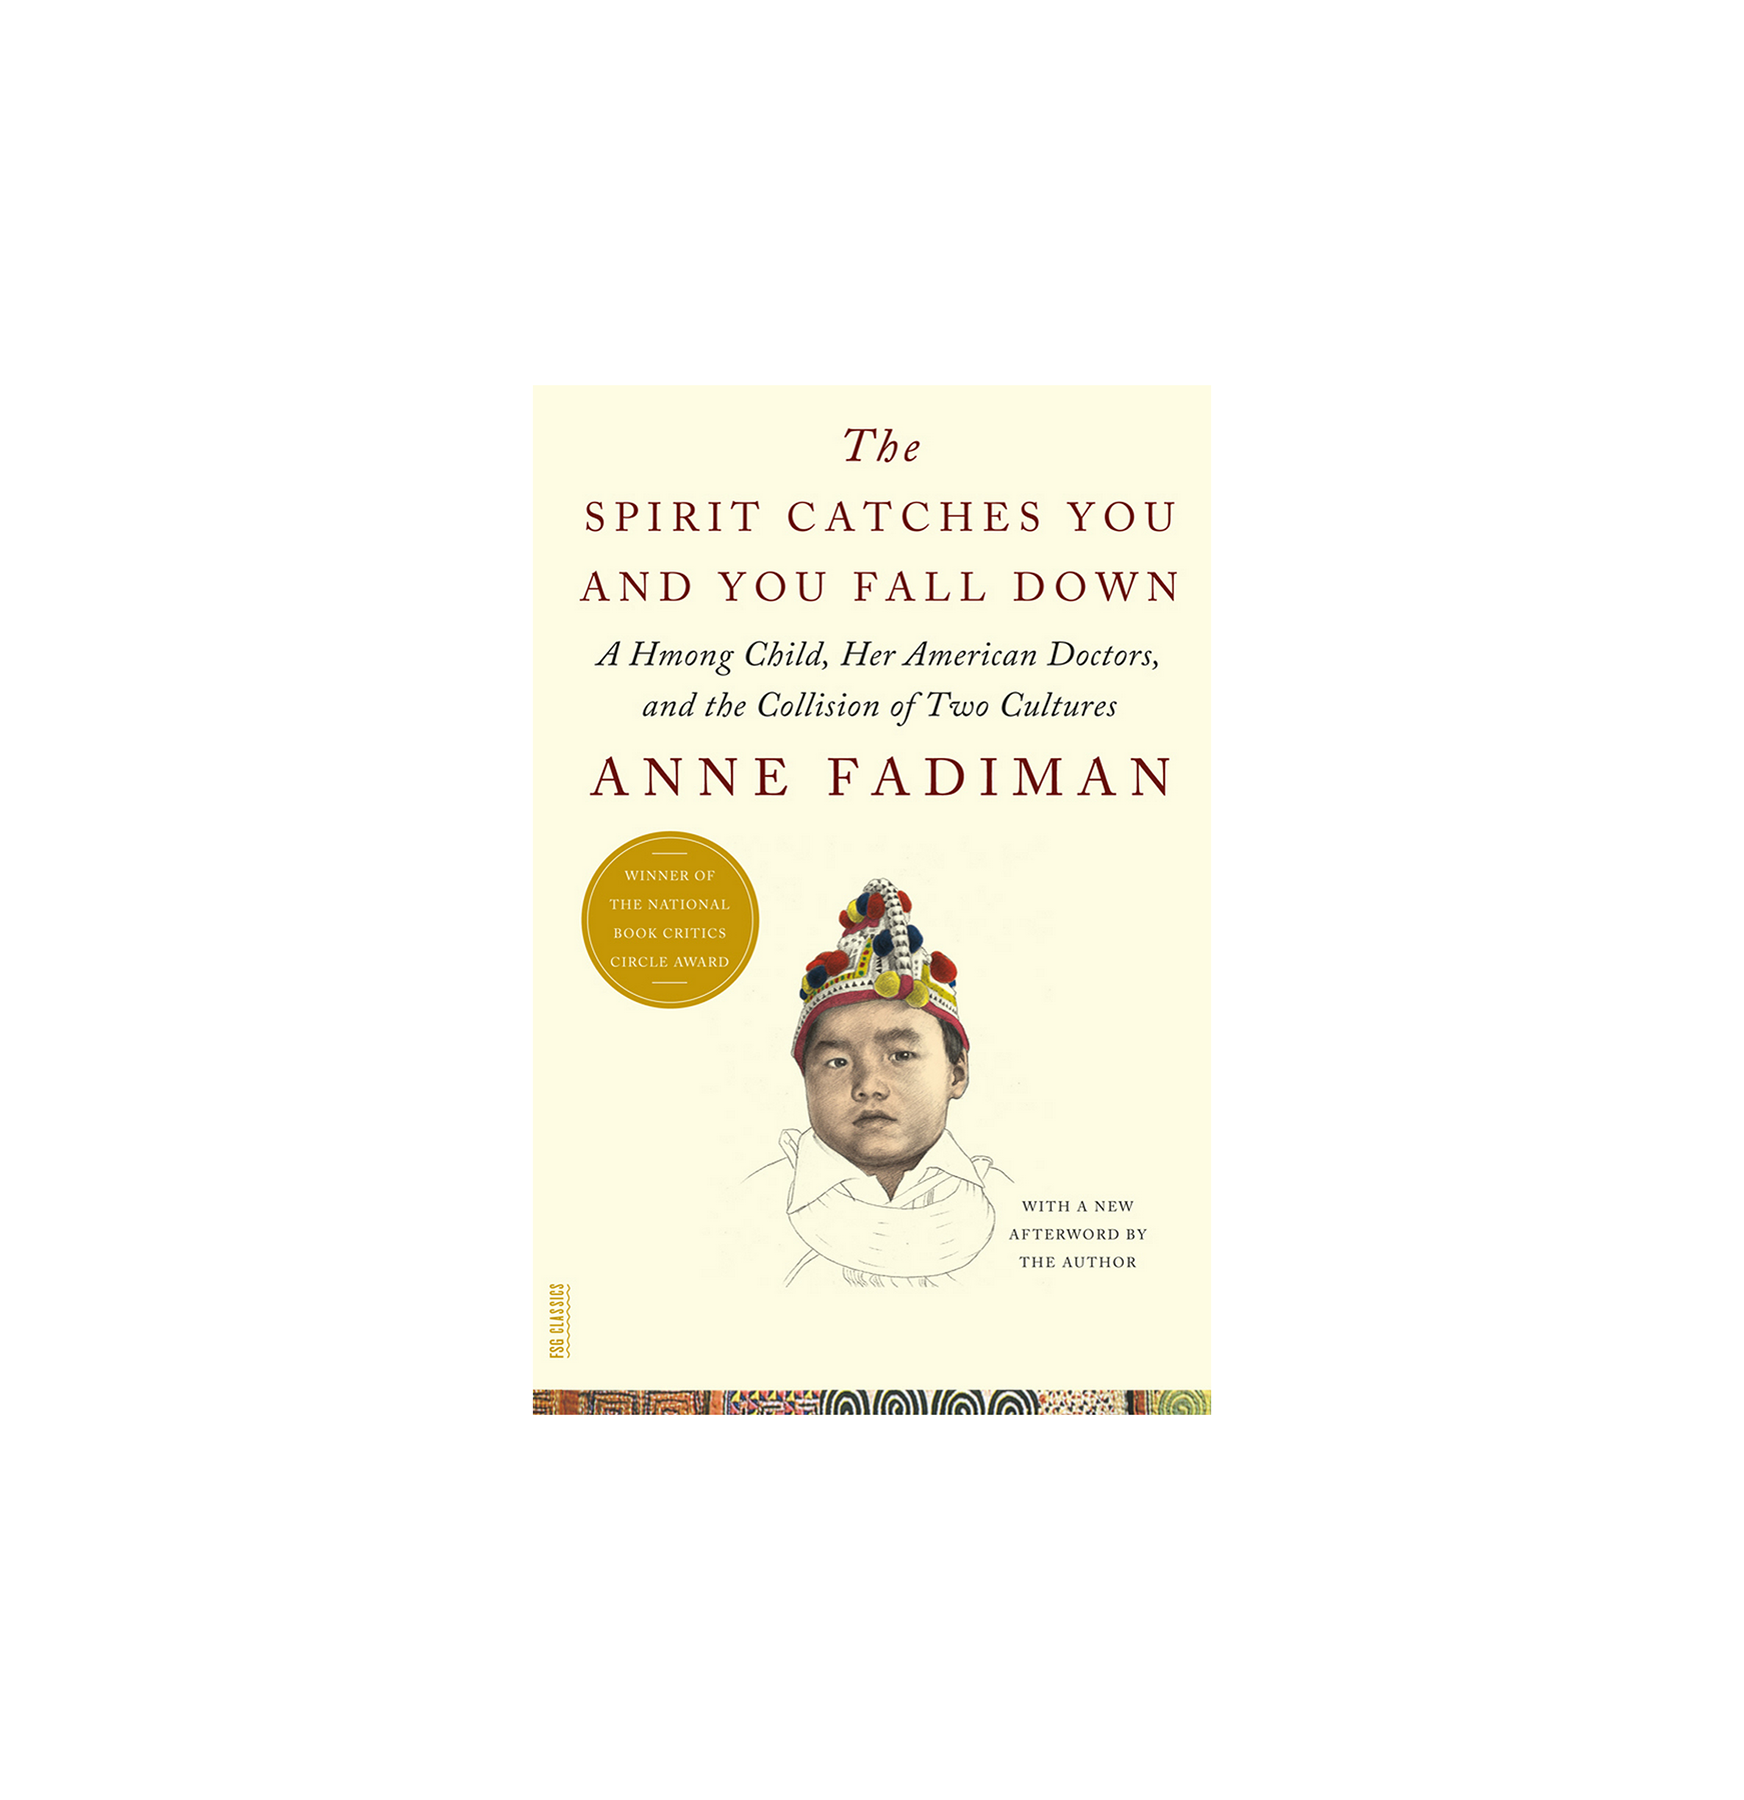 The Spirit Catches You and You Fall Down, by Anne Fadiman